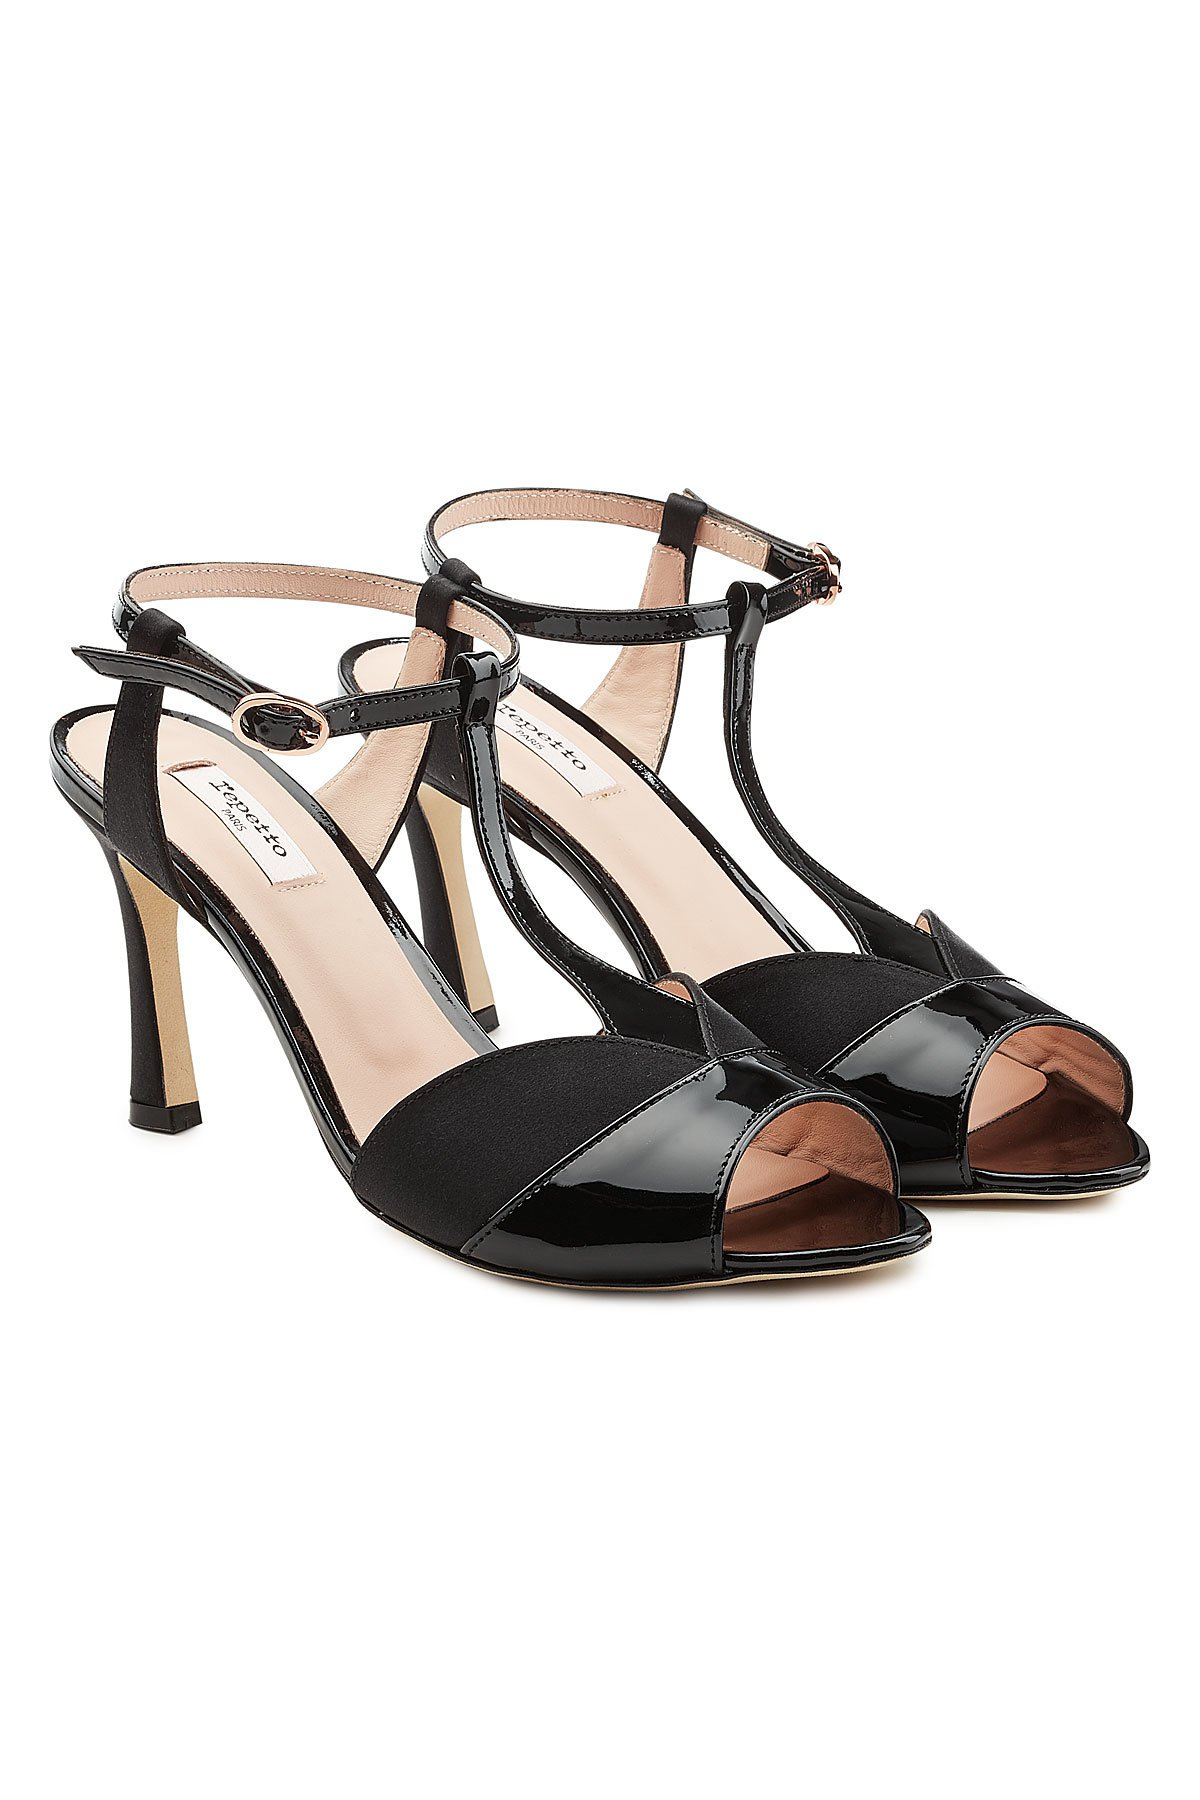 Irma Sandals in Patent Leather and Satin Gr. EU 38